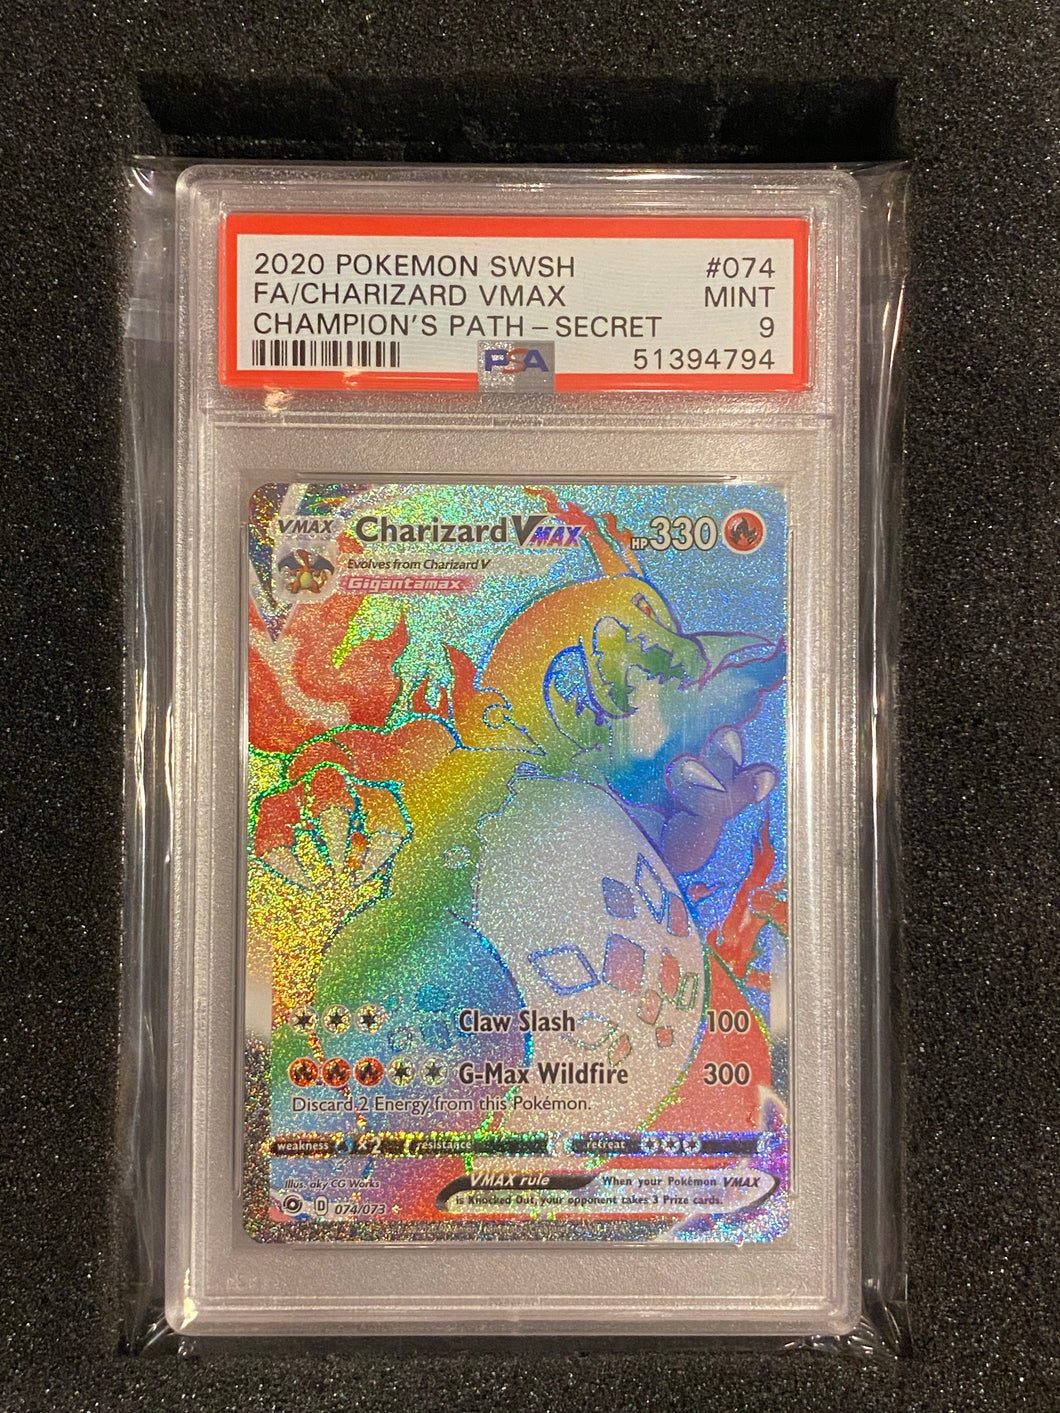 PSA 9 MINT - Rainbow Rare Charizard VMAX 074/073 - Secret Rare Full Art - Champion's Path